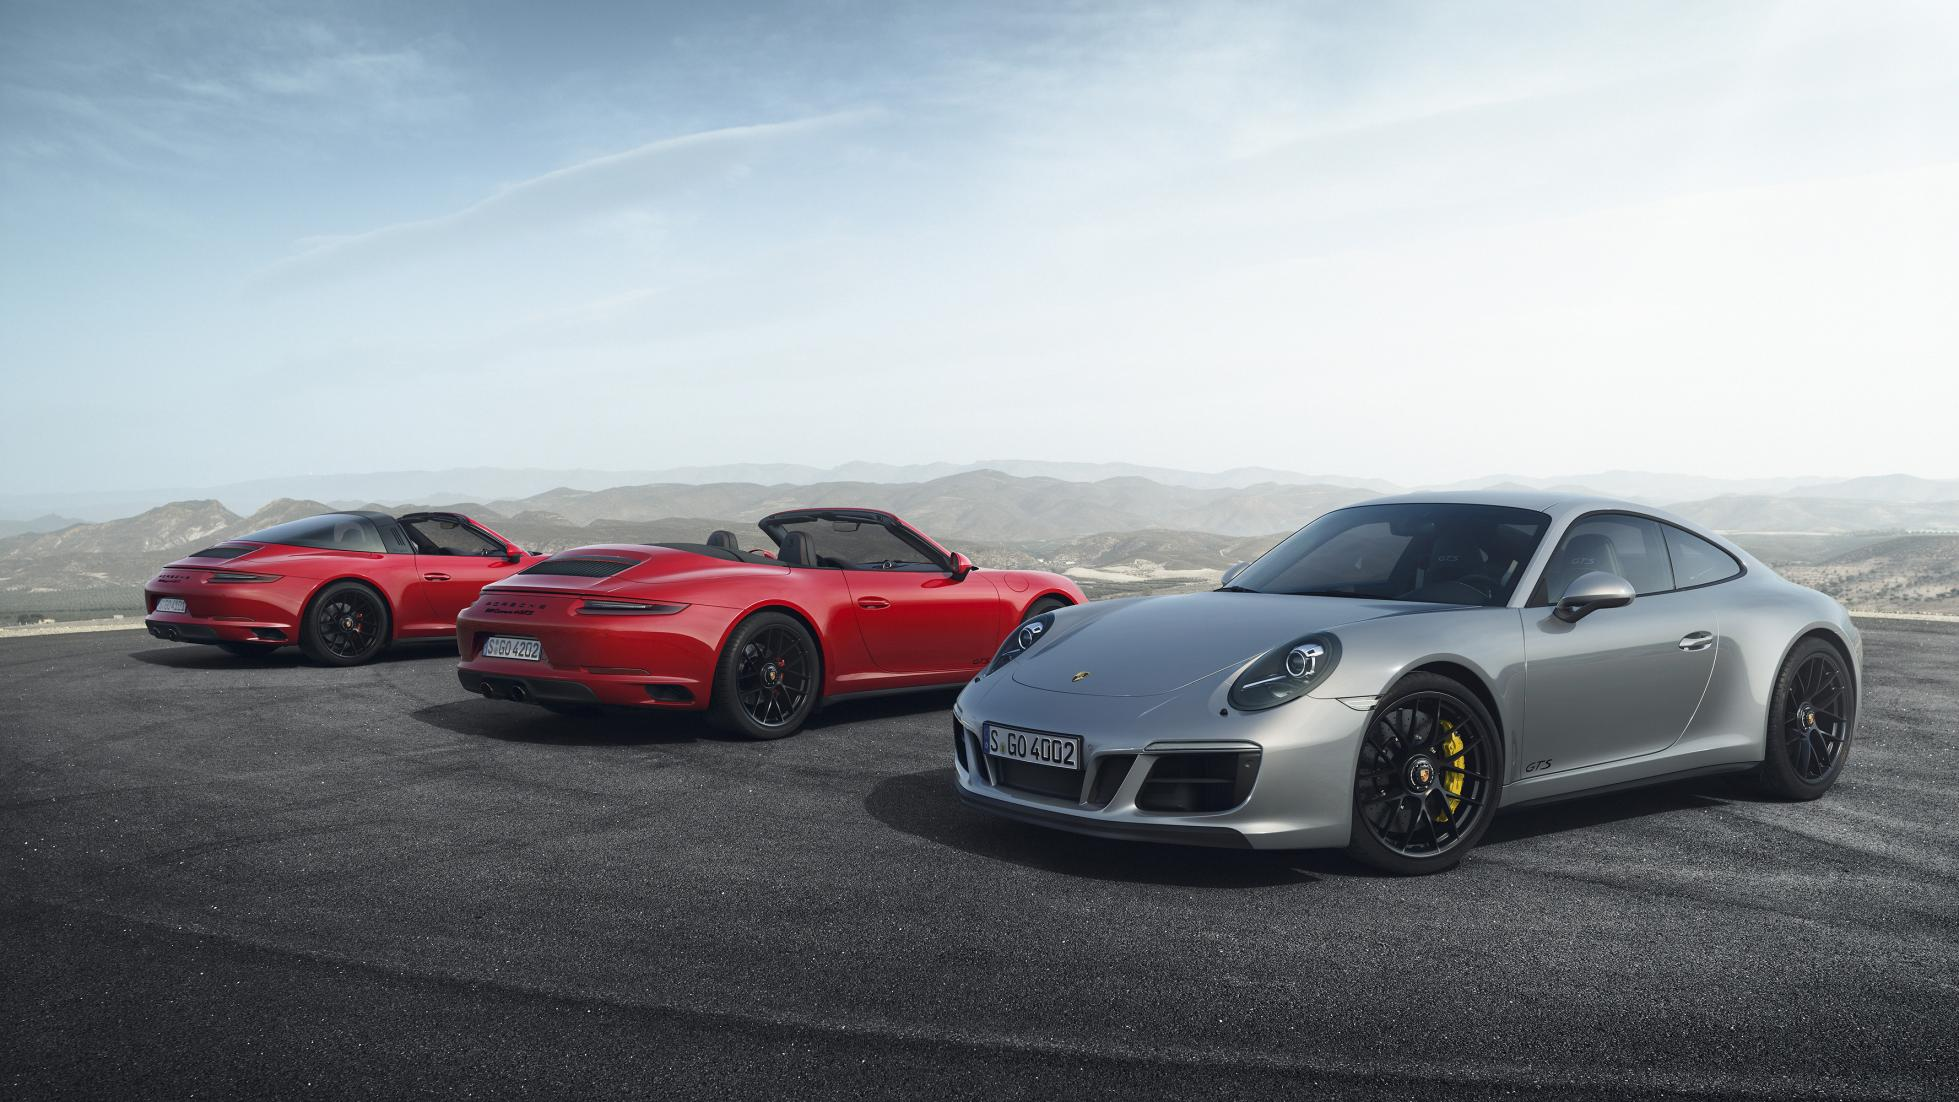 Meet the new Porsche 911 GTS